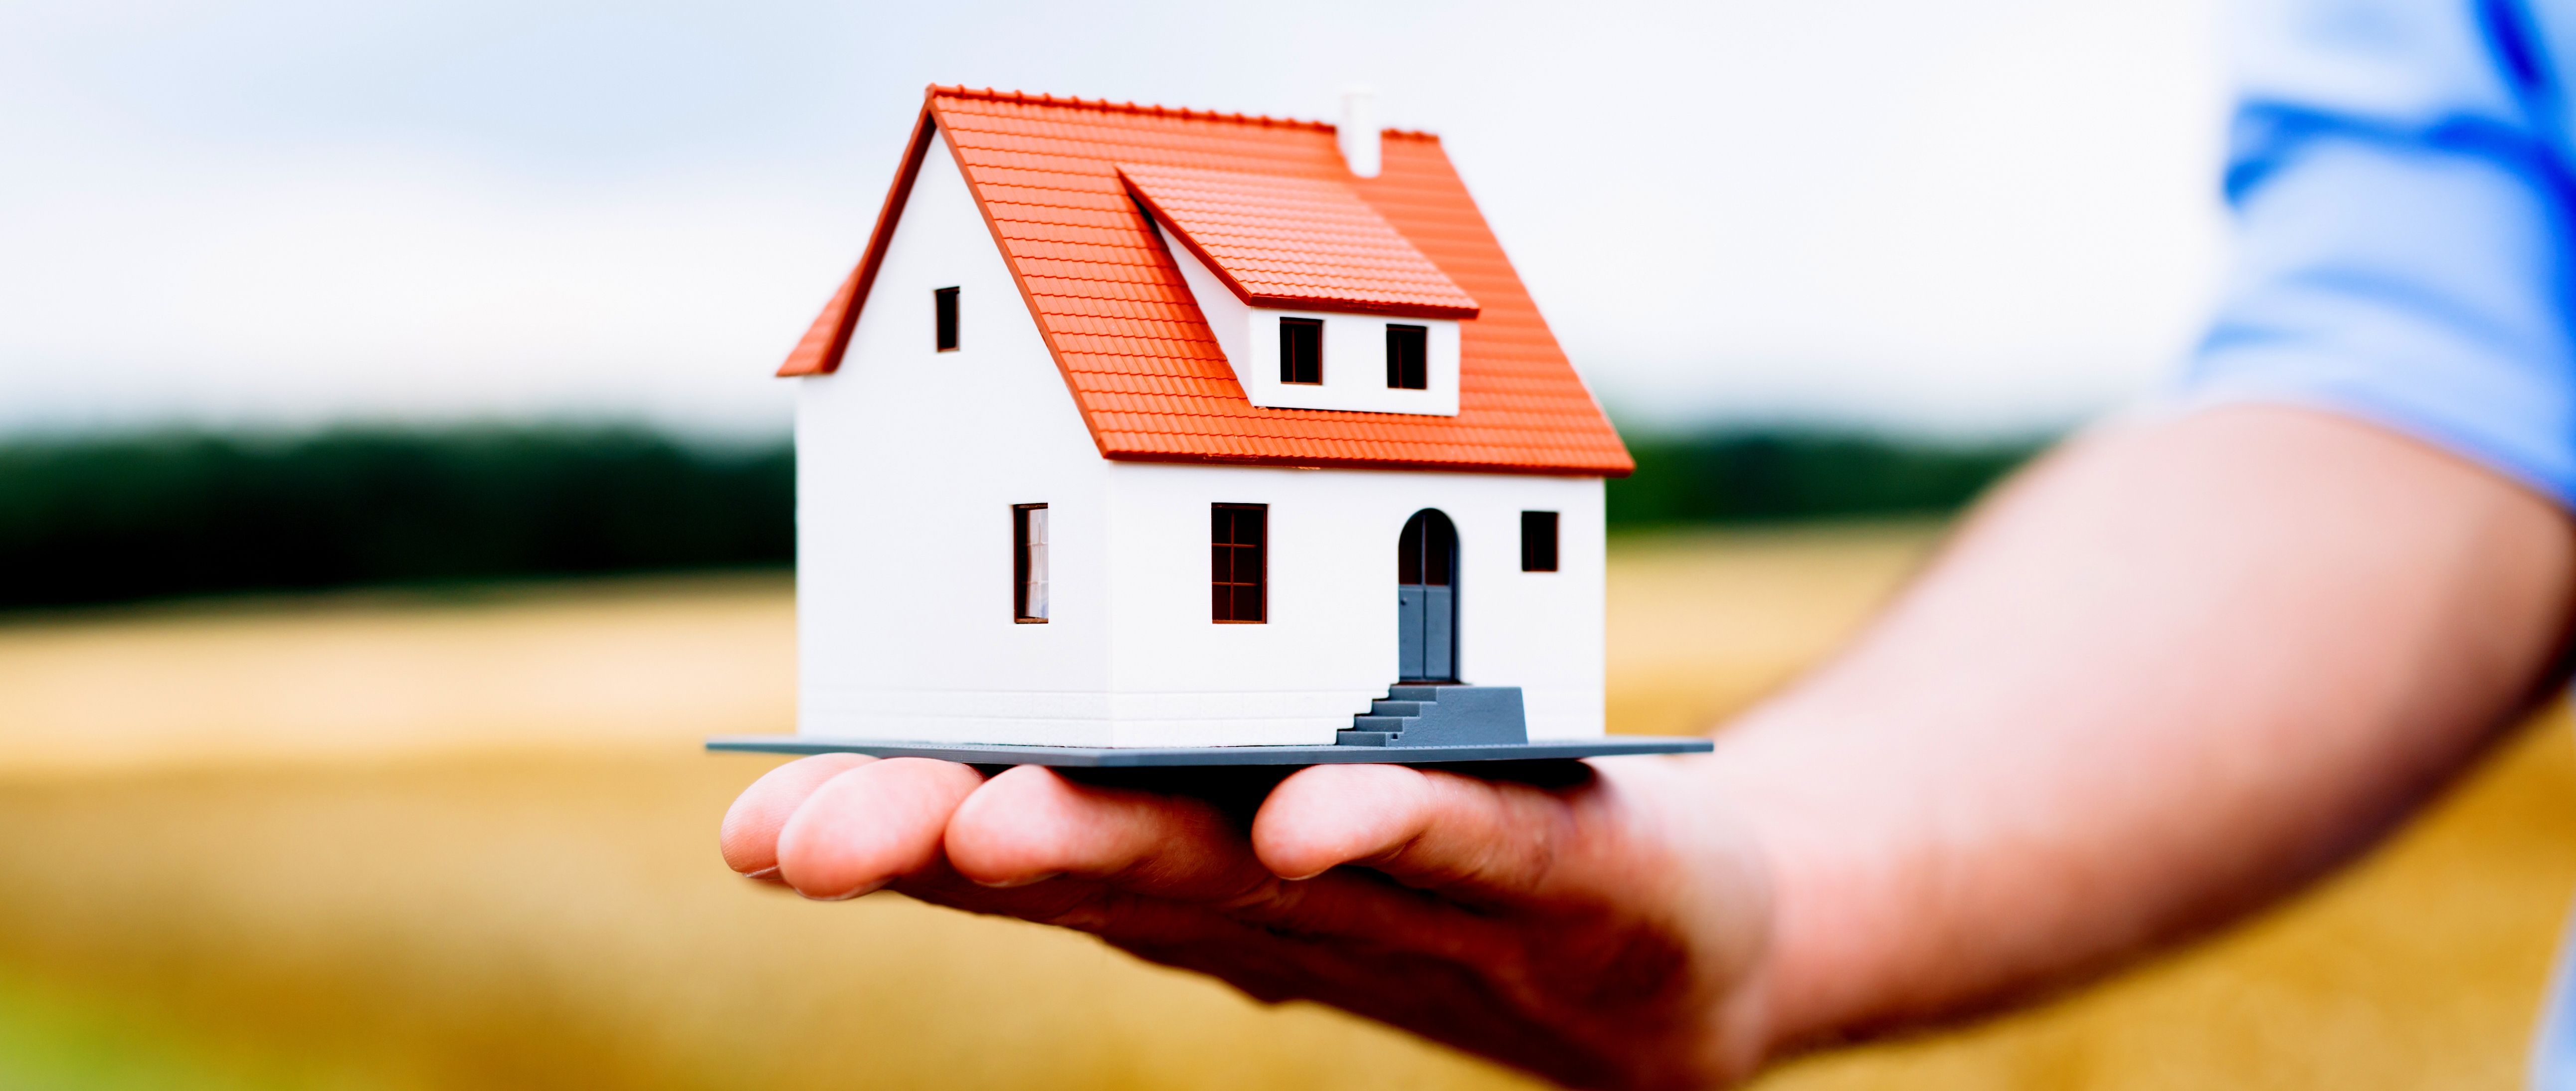 rgv home insurancce affordable property insurance